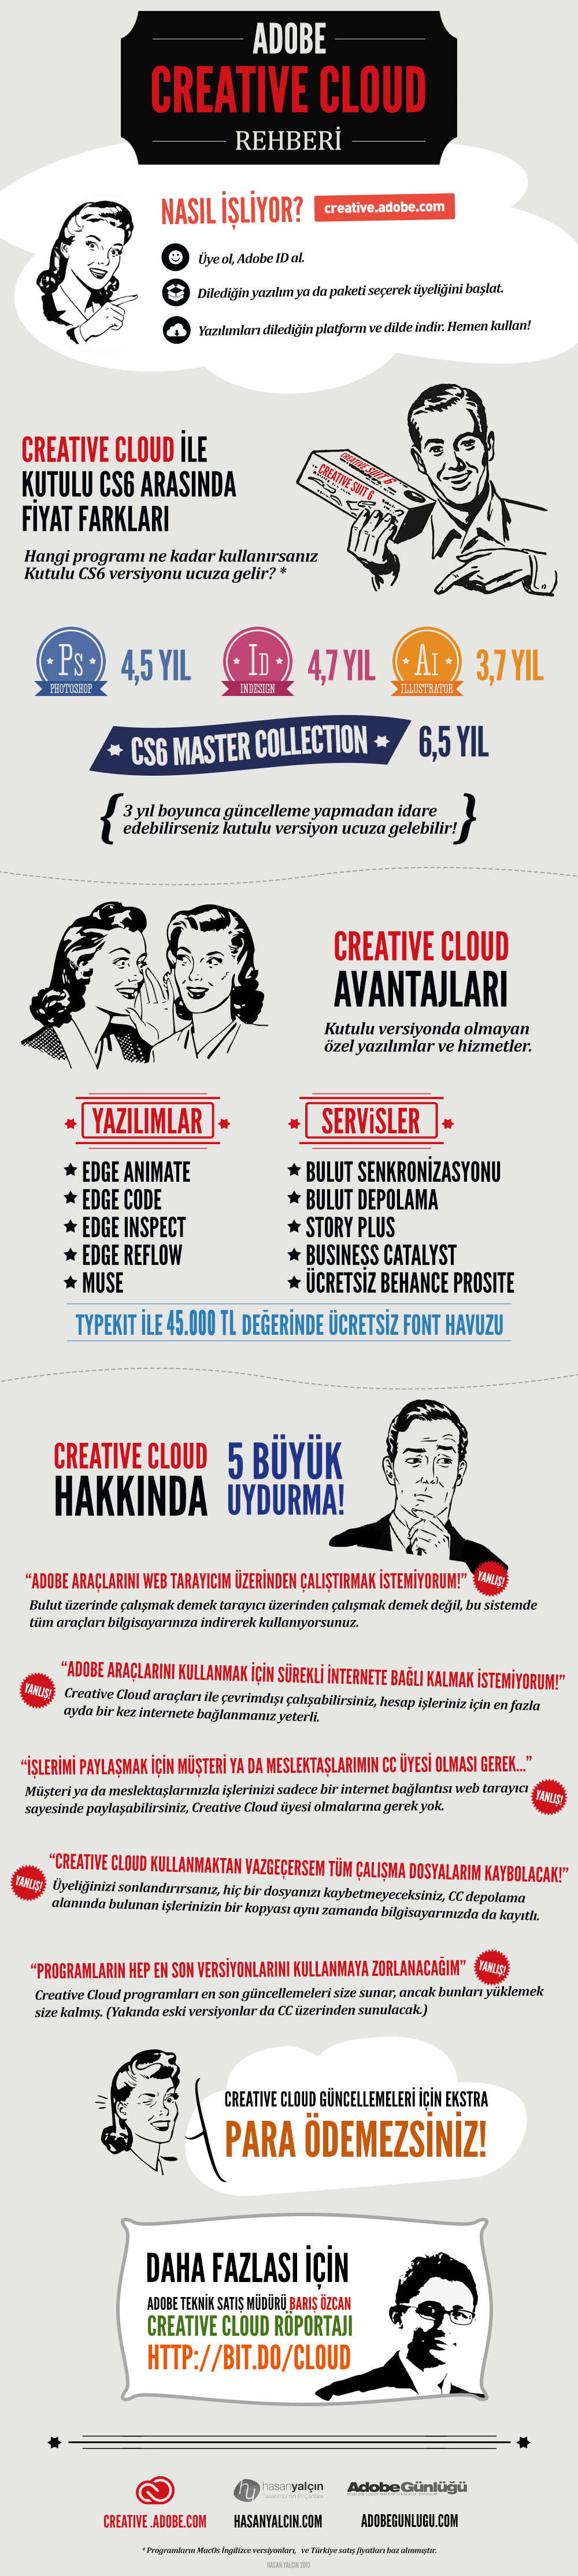 creative_cloud_infografik